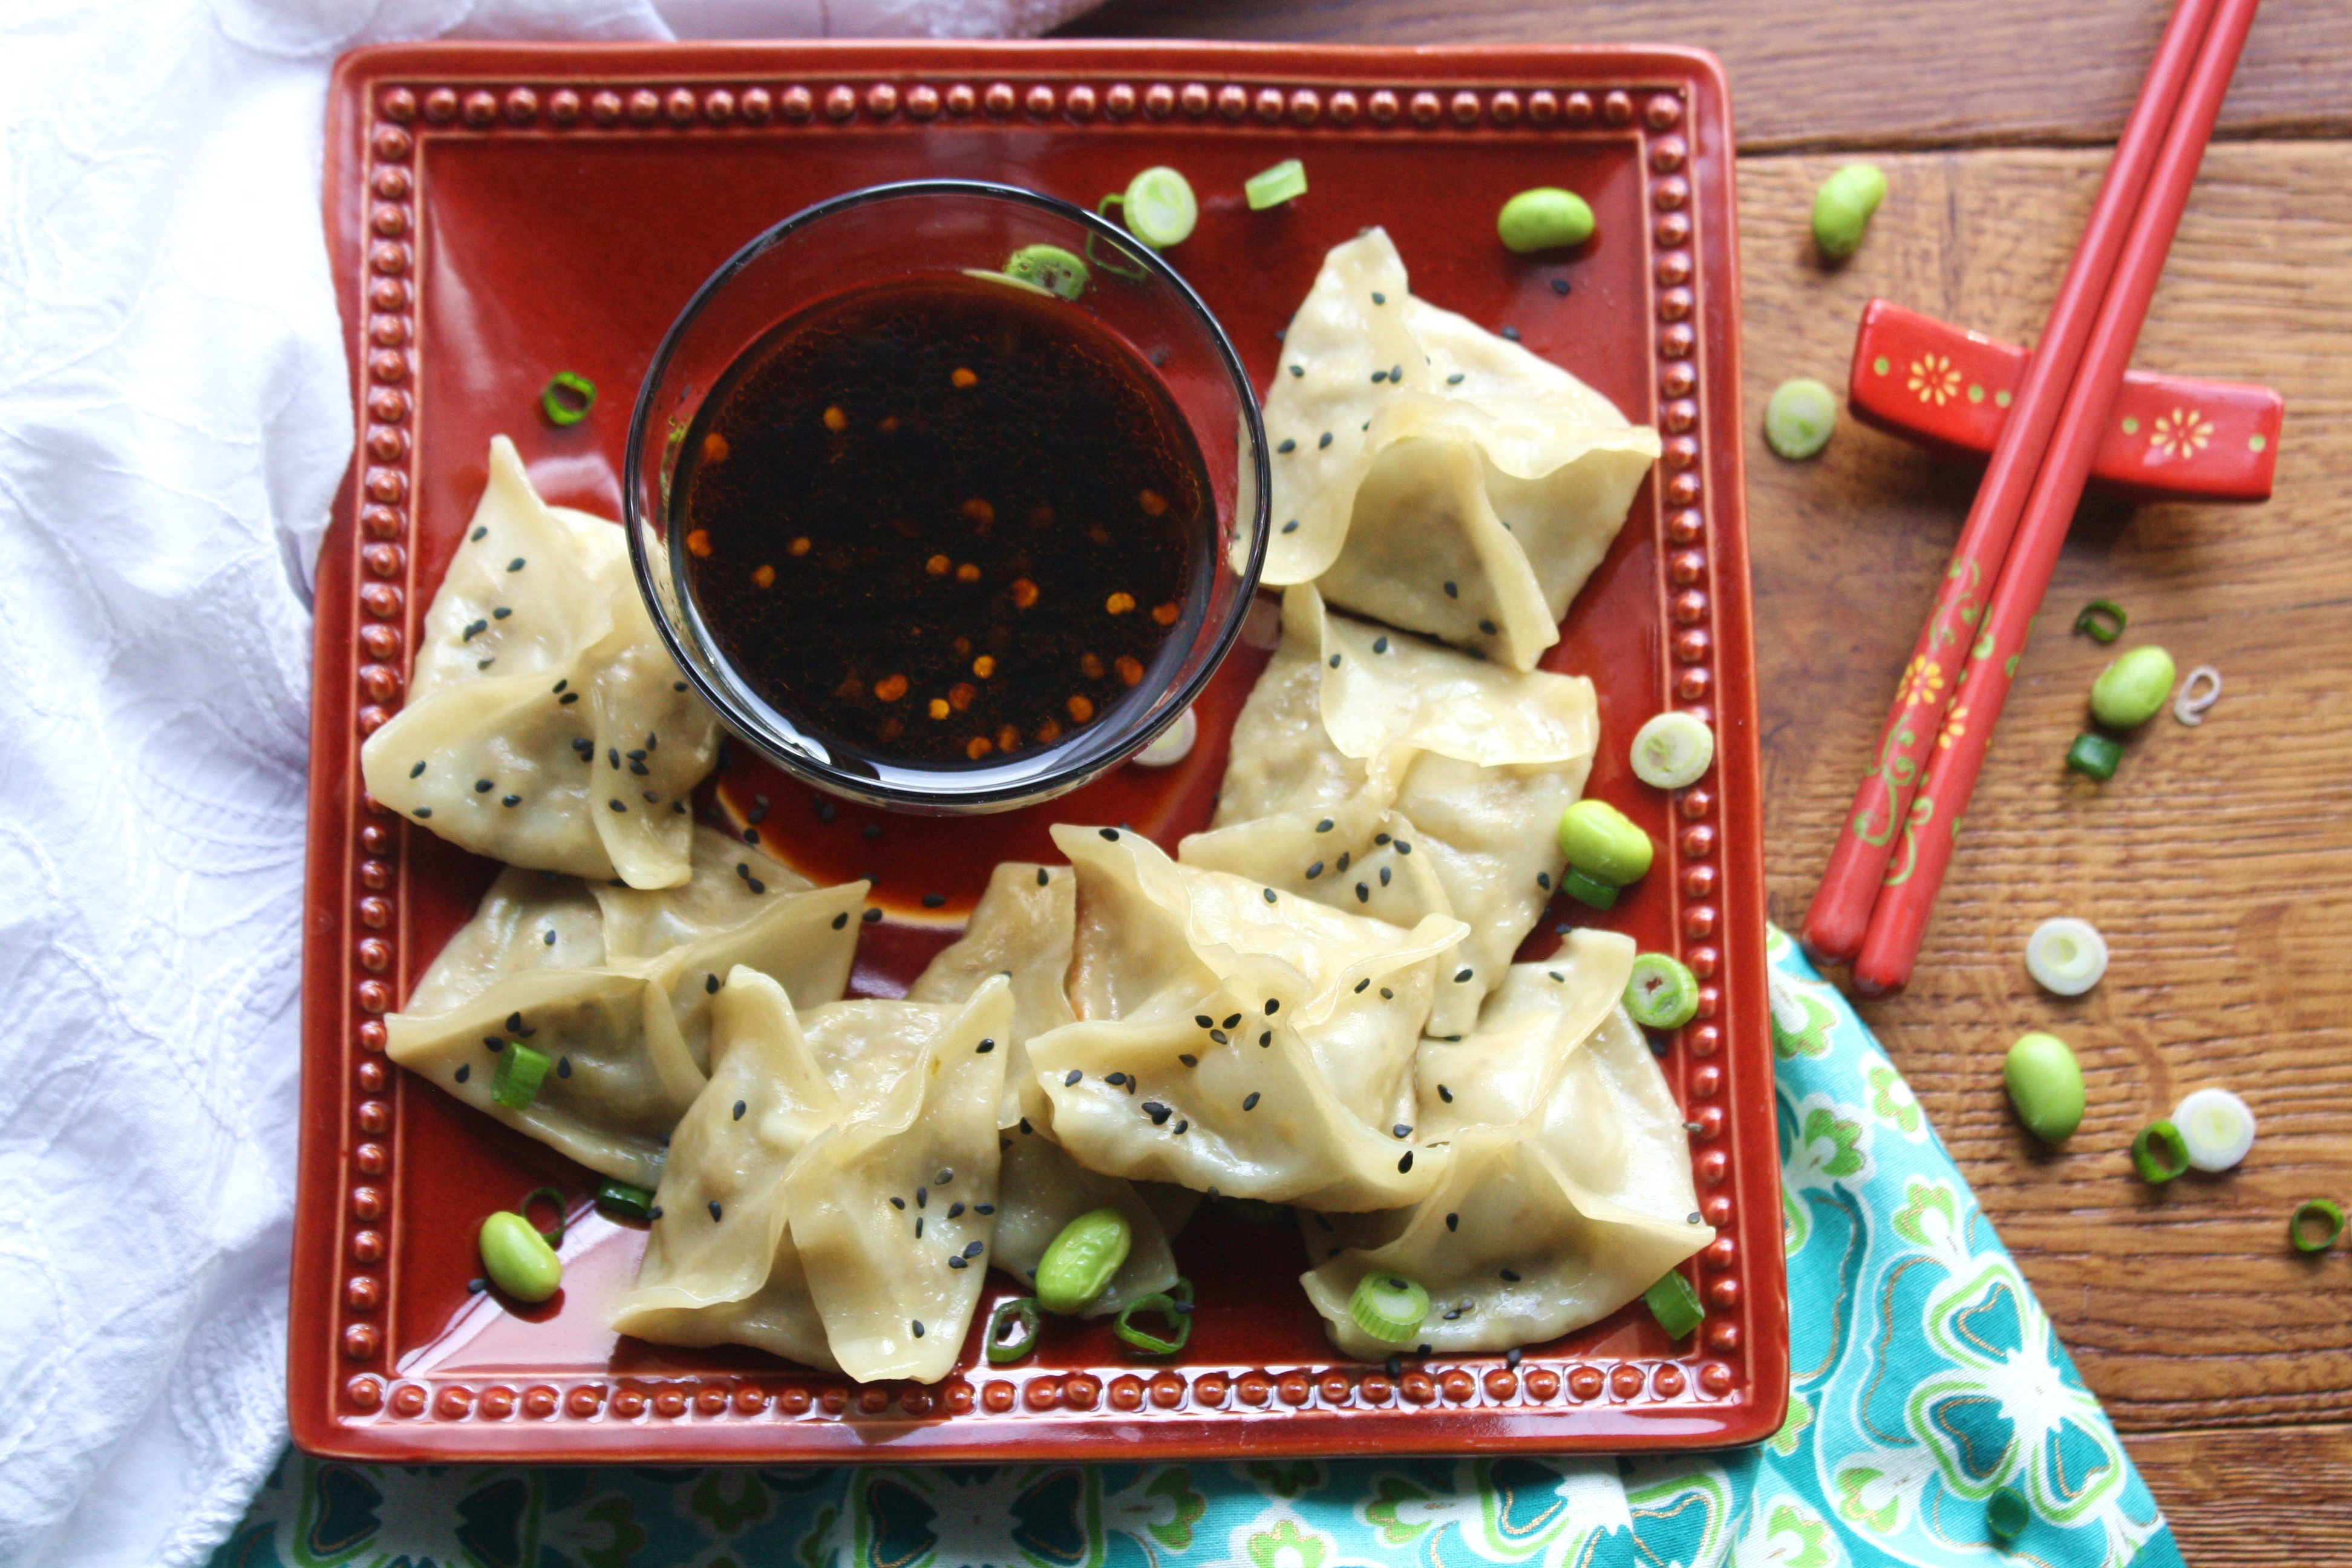 Edamame and Mushroom Potstickers with Dipping Sauce make a yummy snack. You'll love these potstickers with they're tasty dipping sauce!